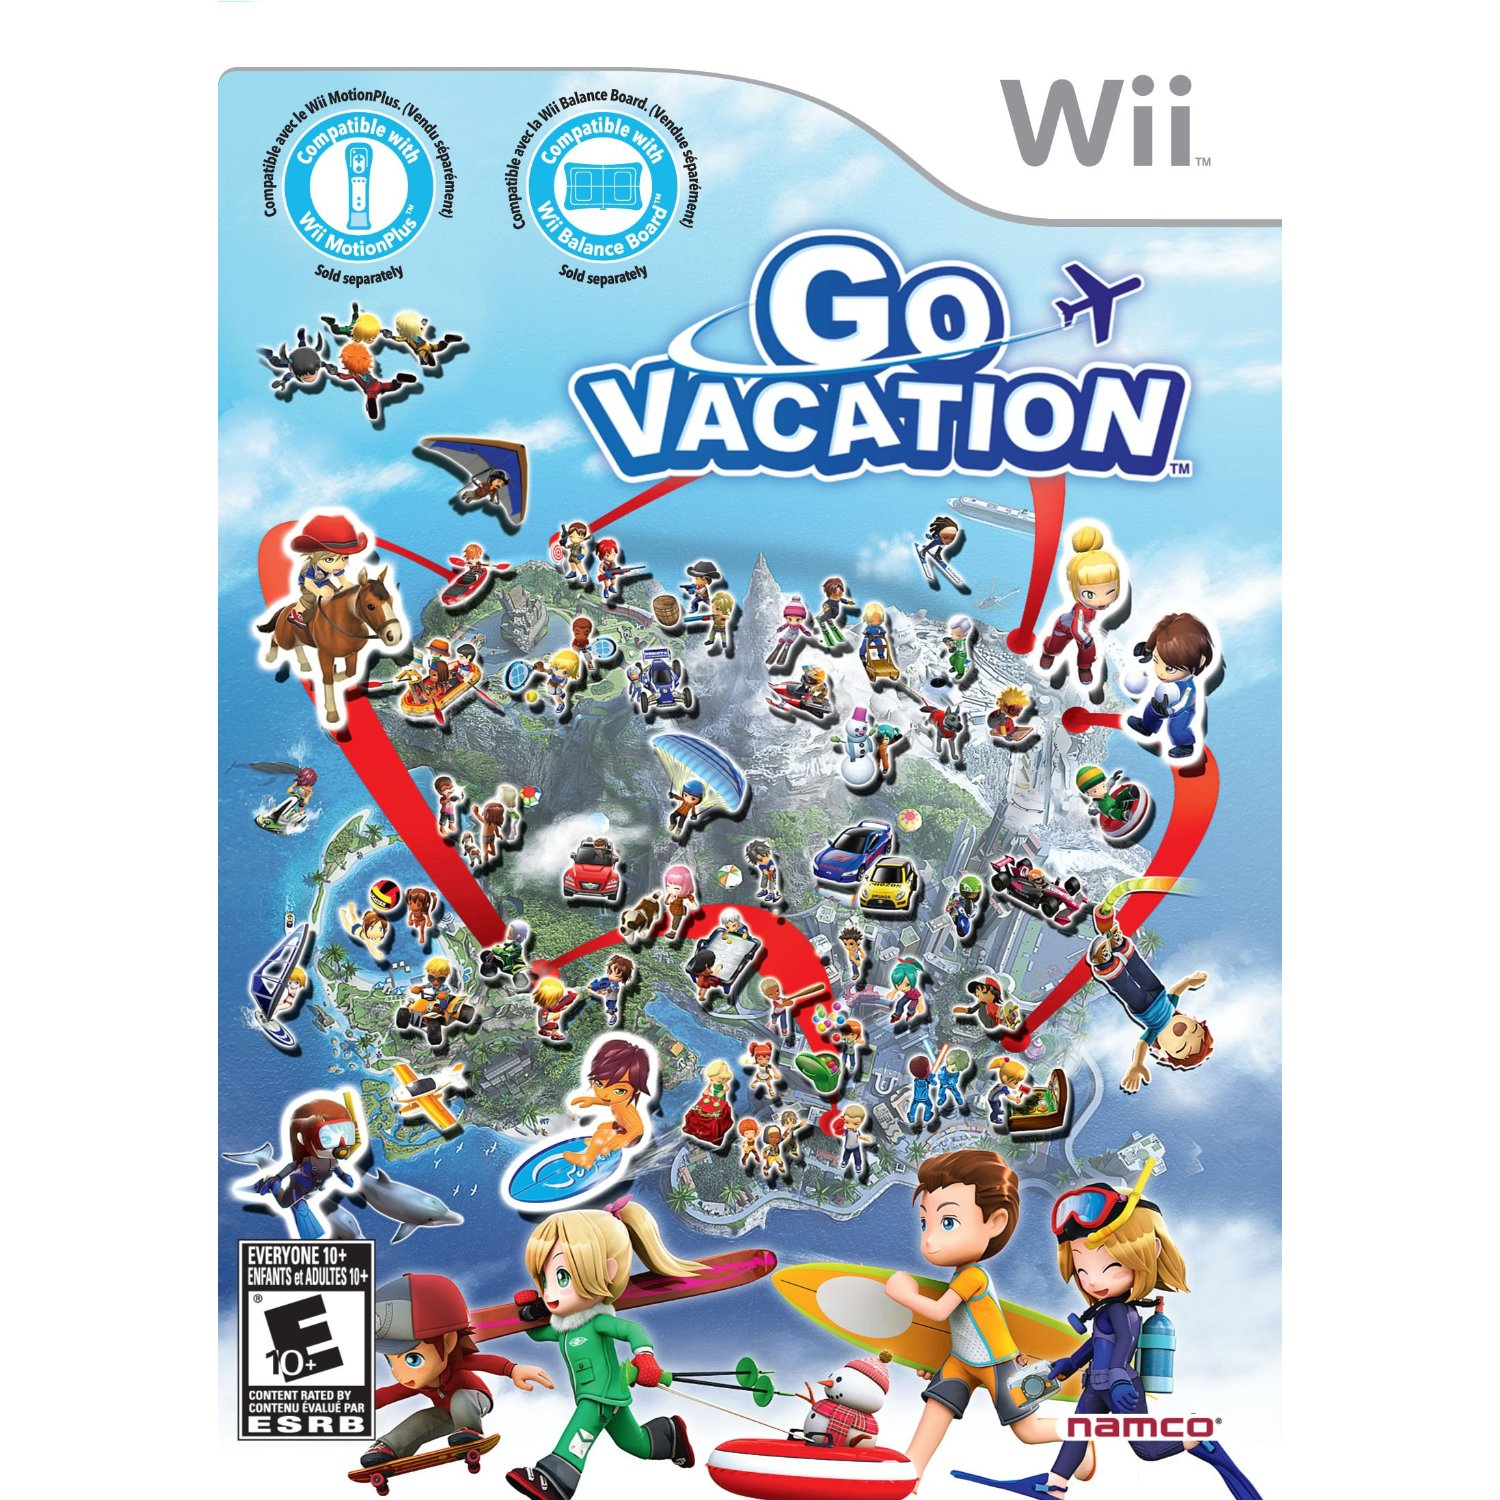 Go Travel Vacations: Wii Go Vacation Game Review